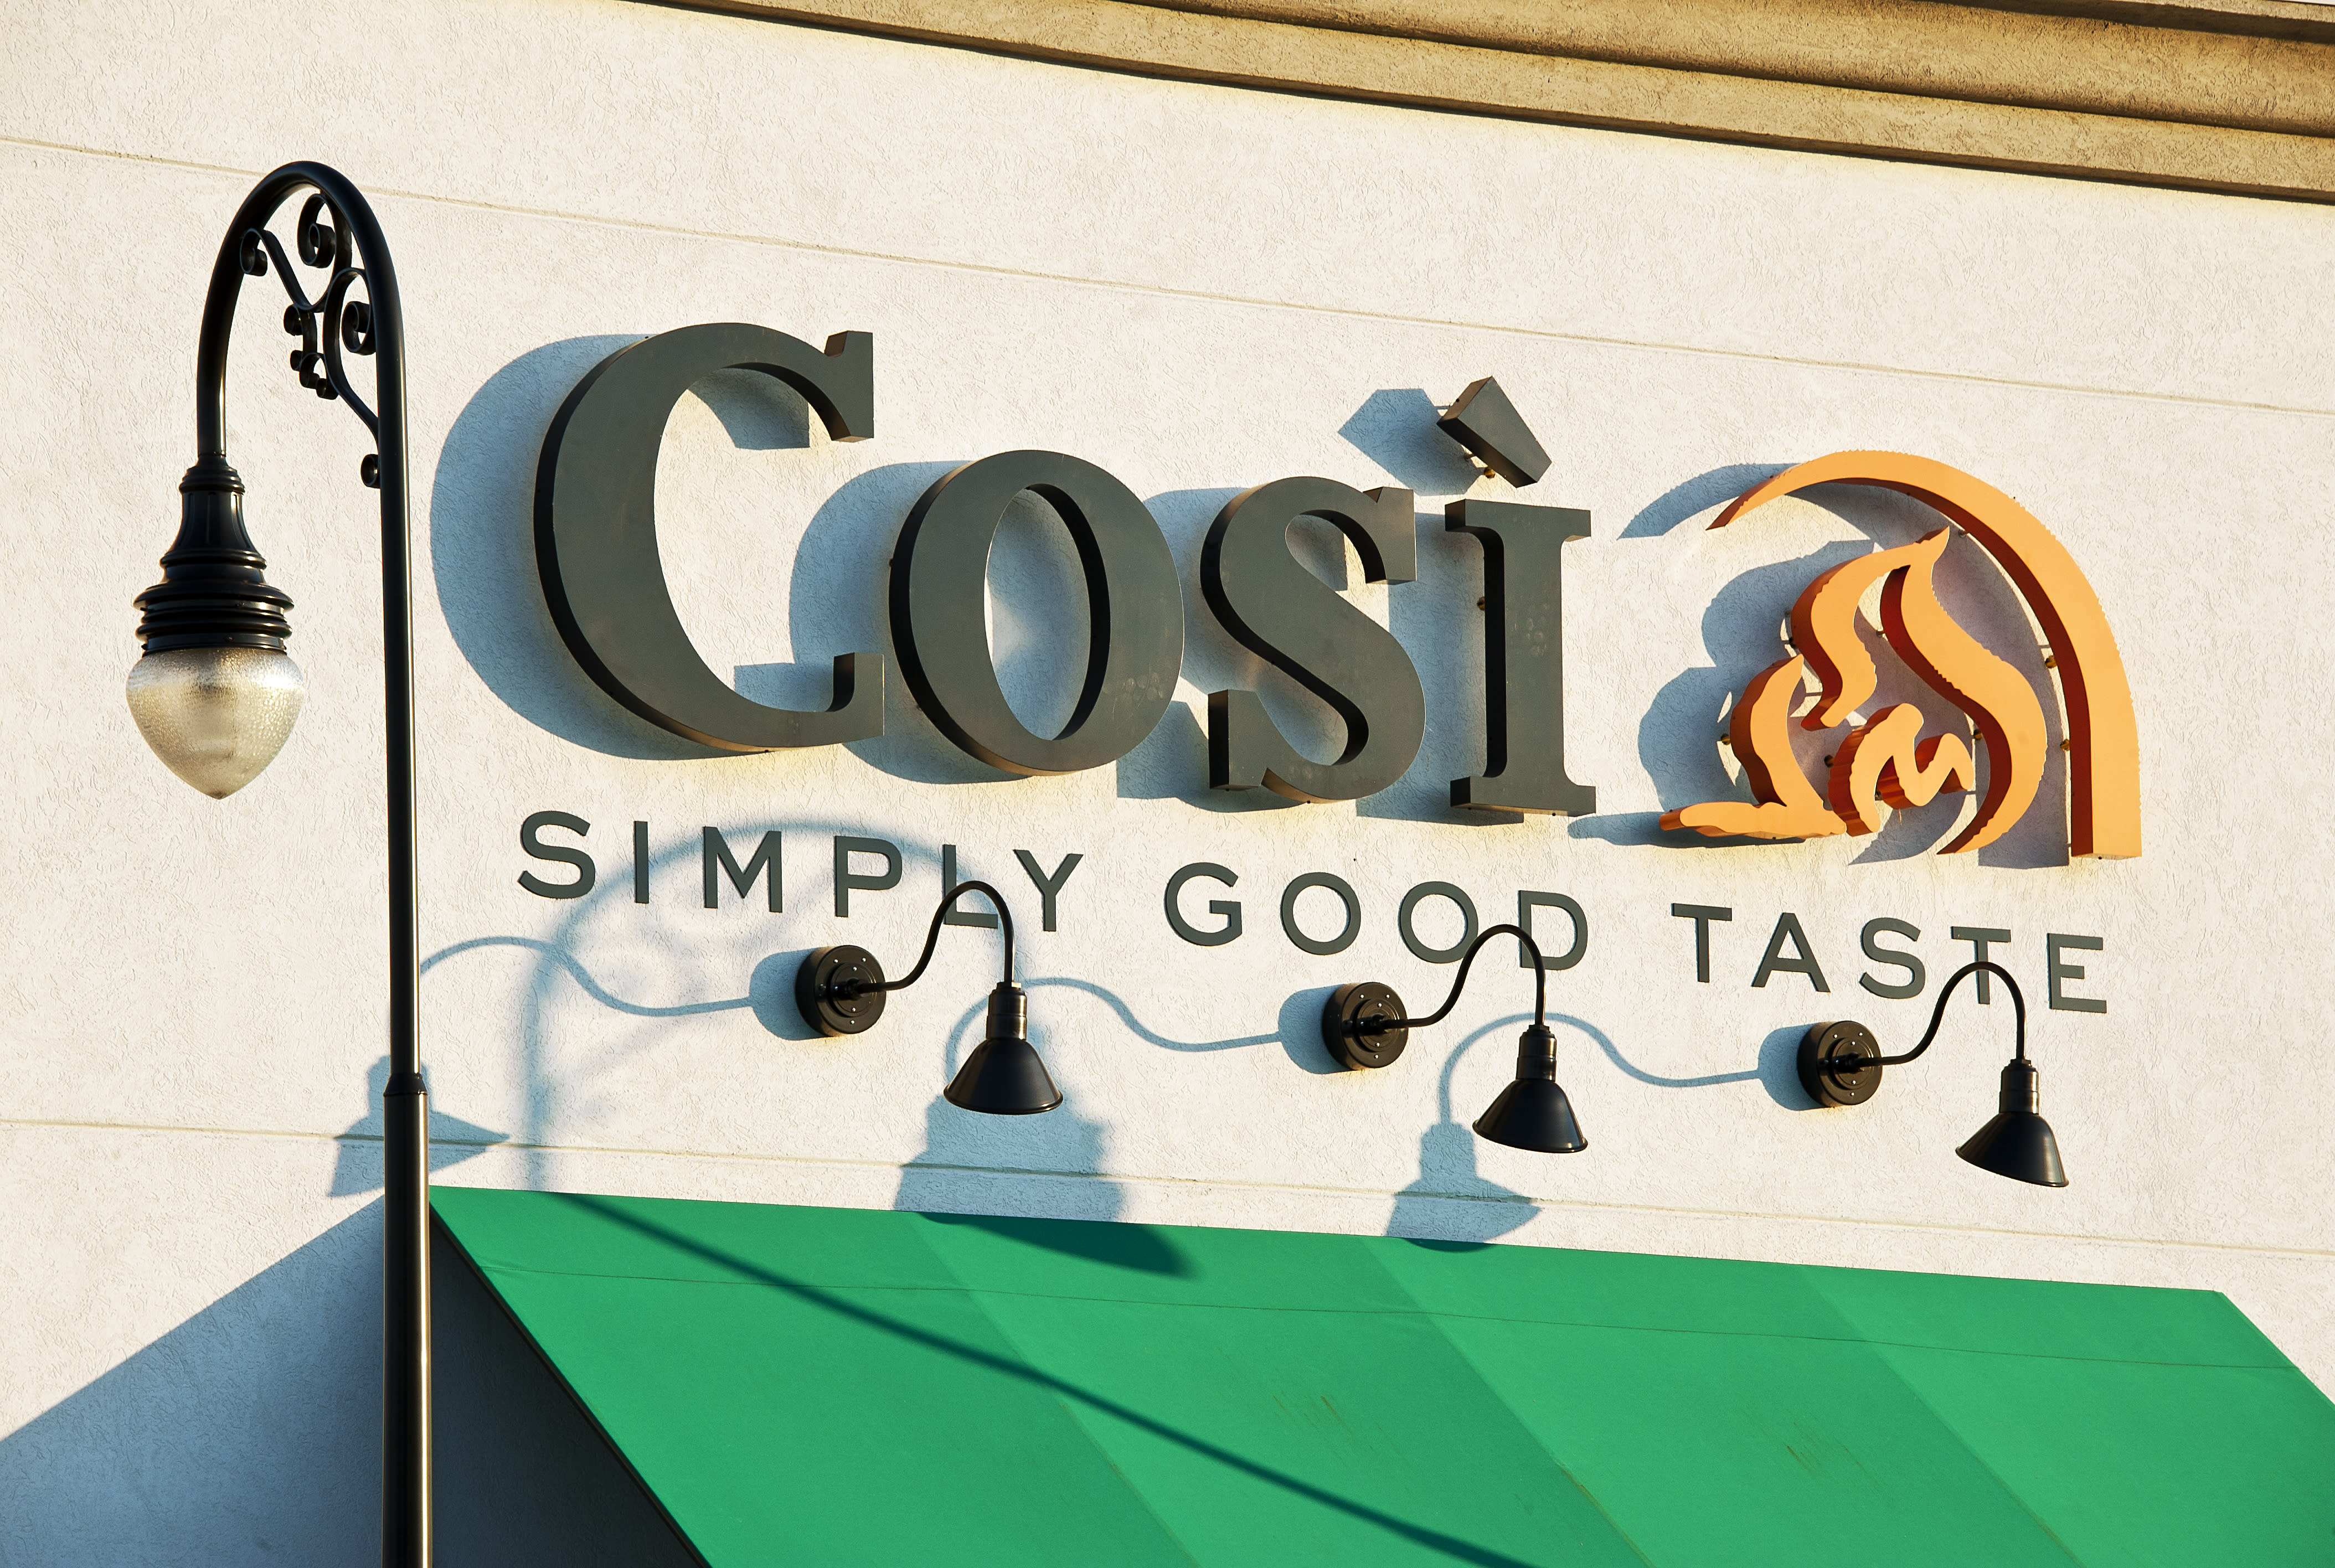 Cafe chain Cosi sues SBA for excluding bankrupt companies from emergency loans